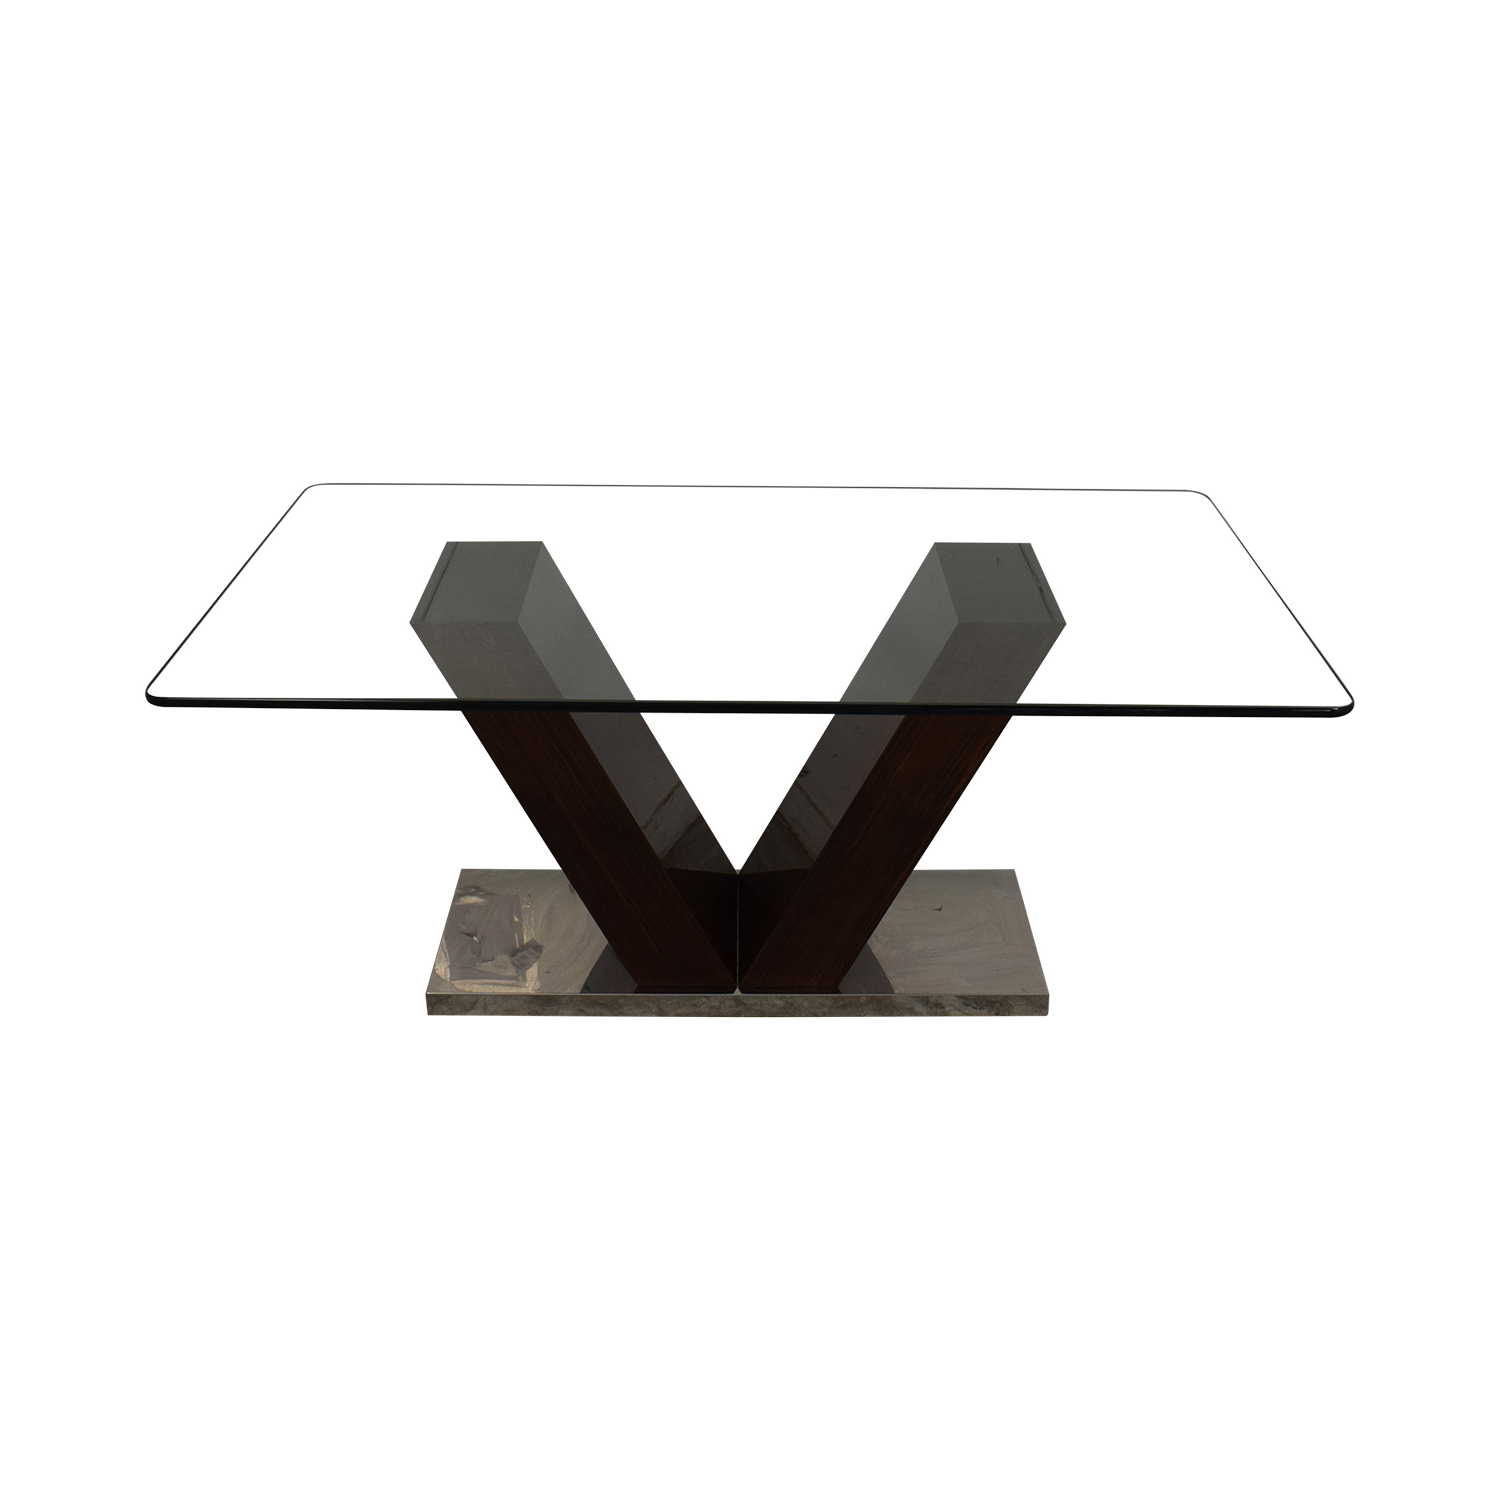 [%88% Off – V Shaped Base Glass Dining Table / Tables Intended For Famous Salvaged Black Shayne Drop Leaf Kitchen Tables|Salvaged Black Shayne Drop Leaf Kitchen Tables Intended For Current 88% Off – V Shaped Base Glass Dining Table / Tables|Fashionable Salvaged Black Shayne Drop Leaf Kitchen Tables Intended For 88% Off – V Shaped Base Glass Dining Table / Tables|Popular 88% Off – V Shaped Base Glass Dining Table / Tables Pertaining To Salvaged Black Shayne Drop Leaf Kitchen Tables%] (View 23 of 25)